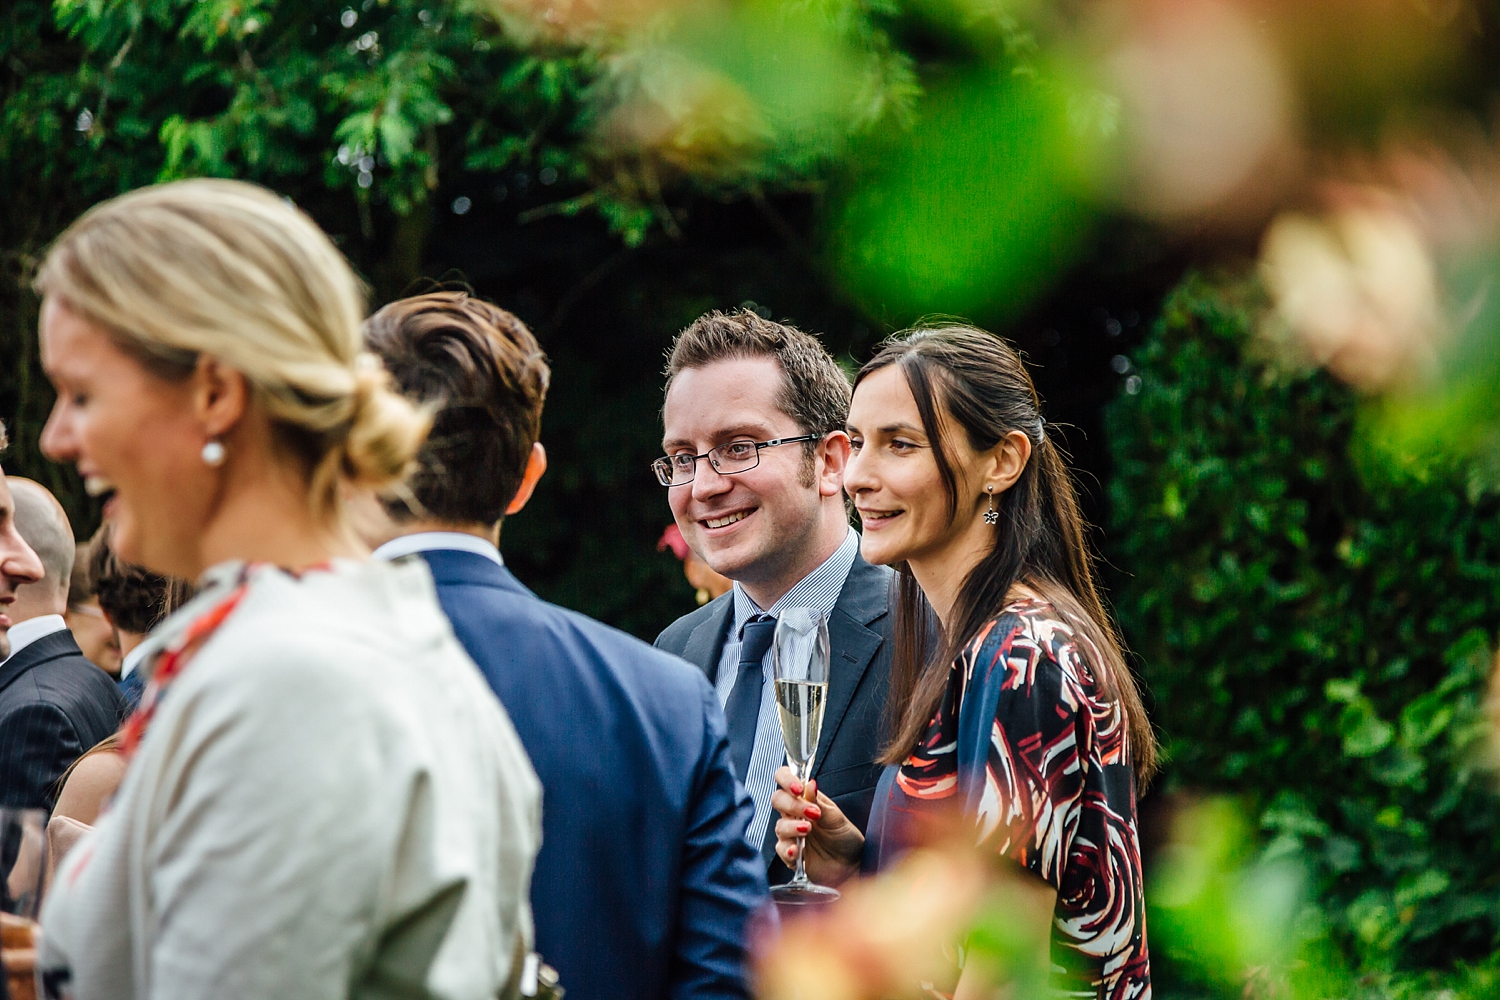 alexvictor-blog-natural-fun-relaxed-documentary-charlotte-jopling-wedding-photography-northamptonshire-home-garden-country-summer-39.jpg